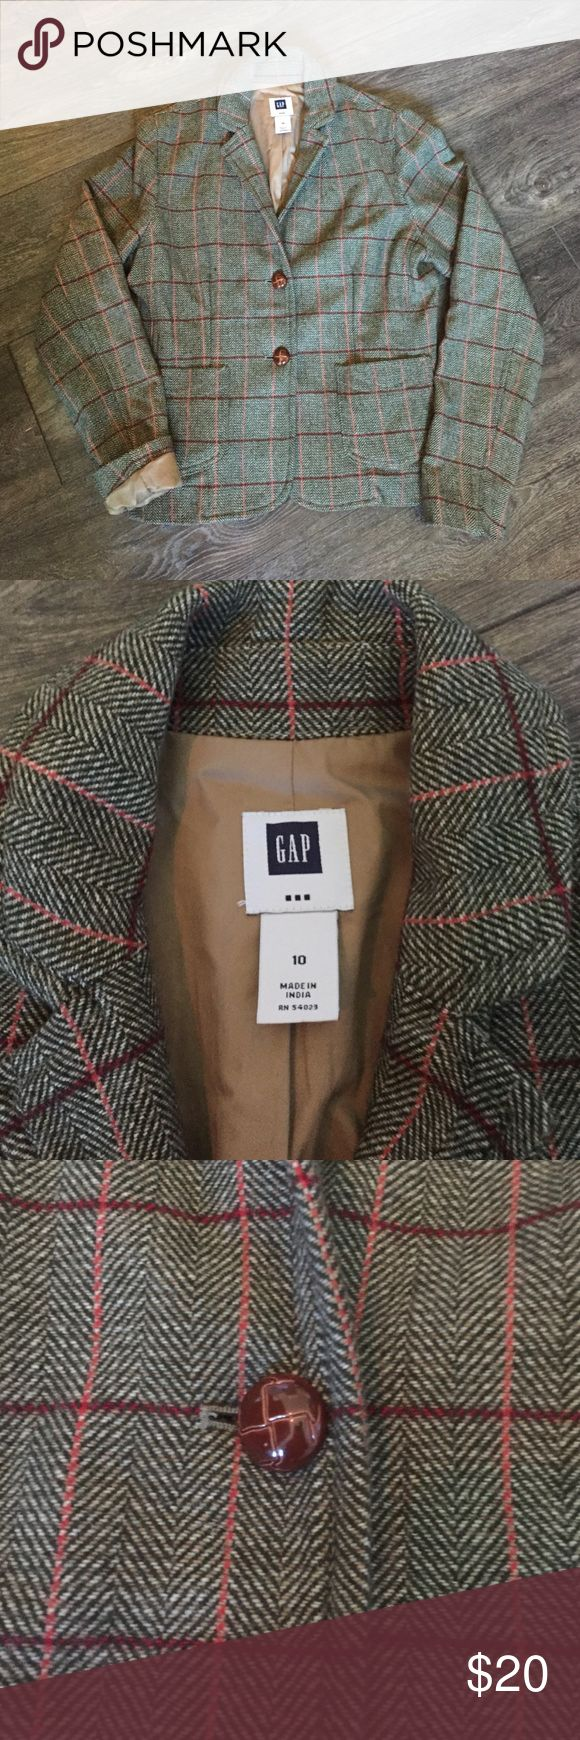 GAP wool blazer, size 10 Green, brown and burgundy tweed 90% wool blazer. Light brown lining. Pair with a skirt, pants or jeans for a great fall and winter outfit. Lightly worn. Pet free, smoke free home. GAP Jackets & Coats Blazers